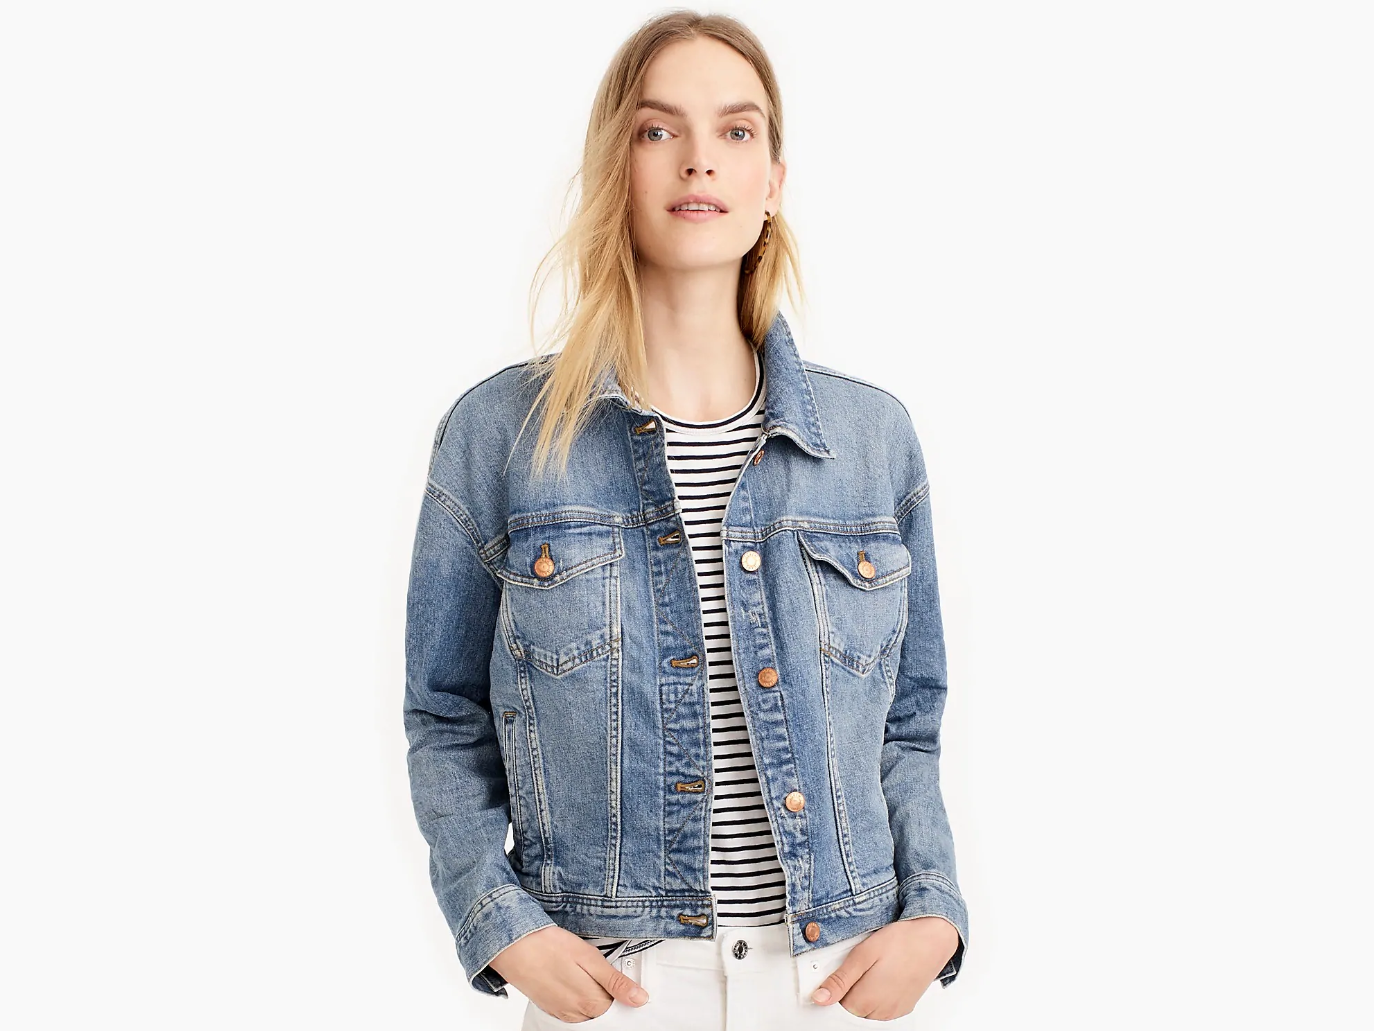 J.Crew Eco Denim Jacket